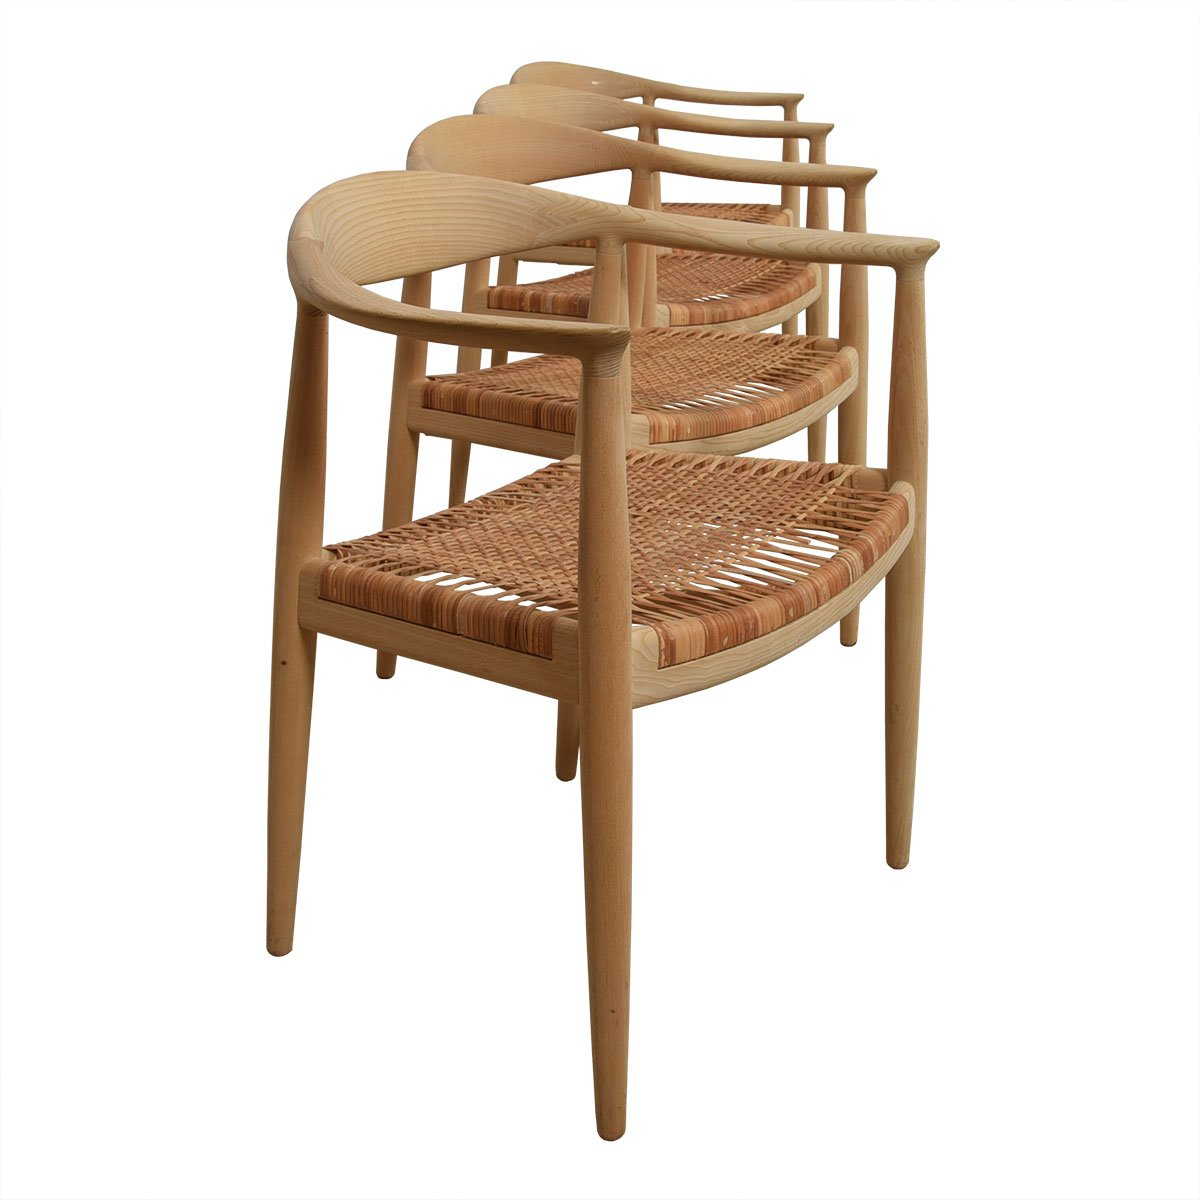 "Authentic Hans Wegner ""The Chair"" Set of 8 by PP Mobler"